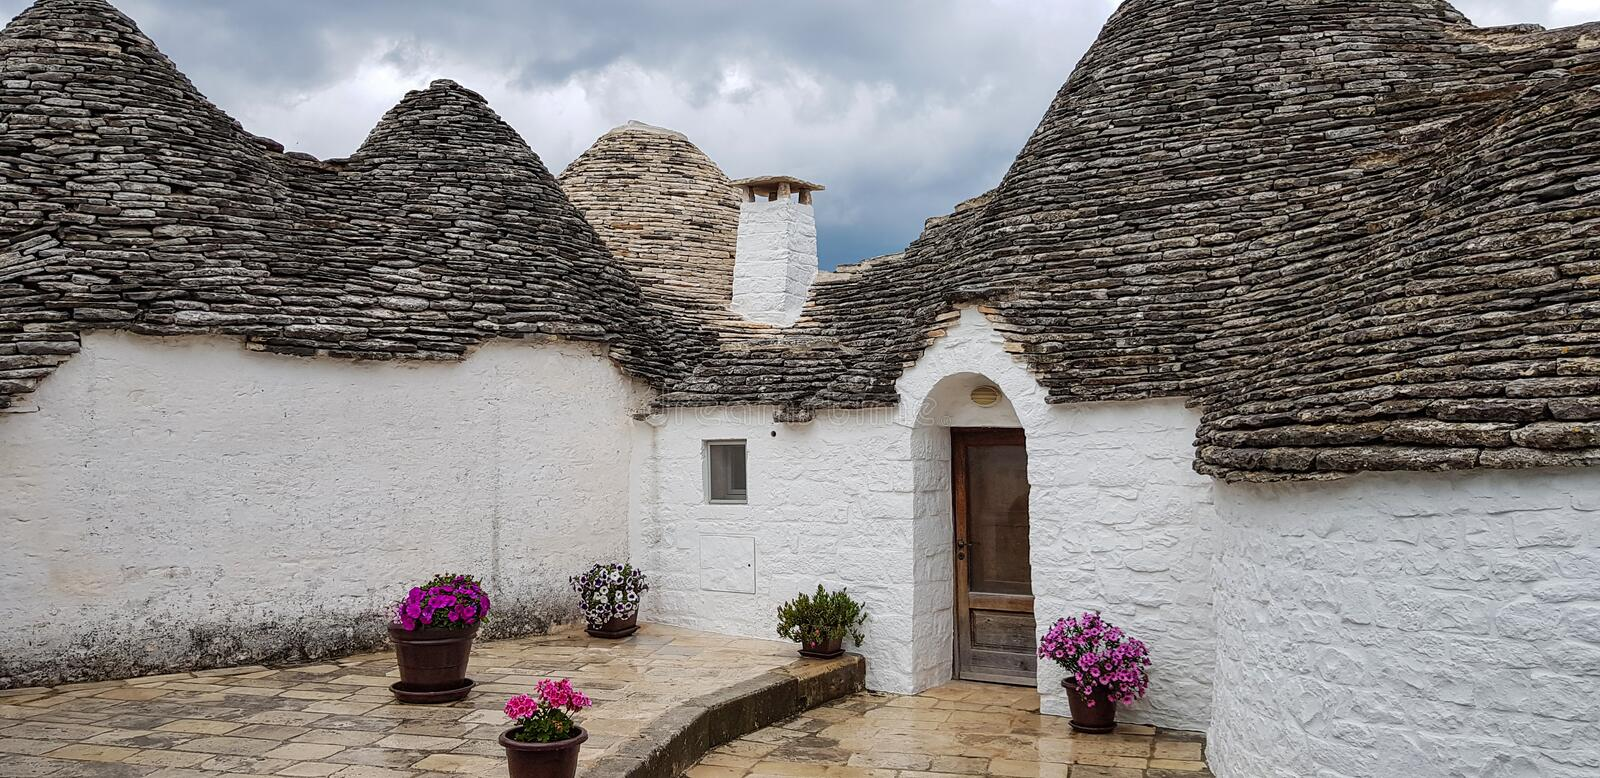 Beautiful town of Alberobello with trulli houses. It is an Italian town in the metropolitan city of Bari, in Puglia,  Italy.  stock images